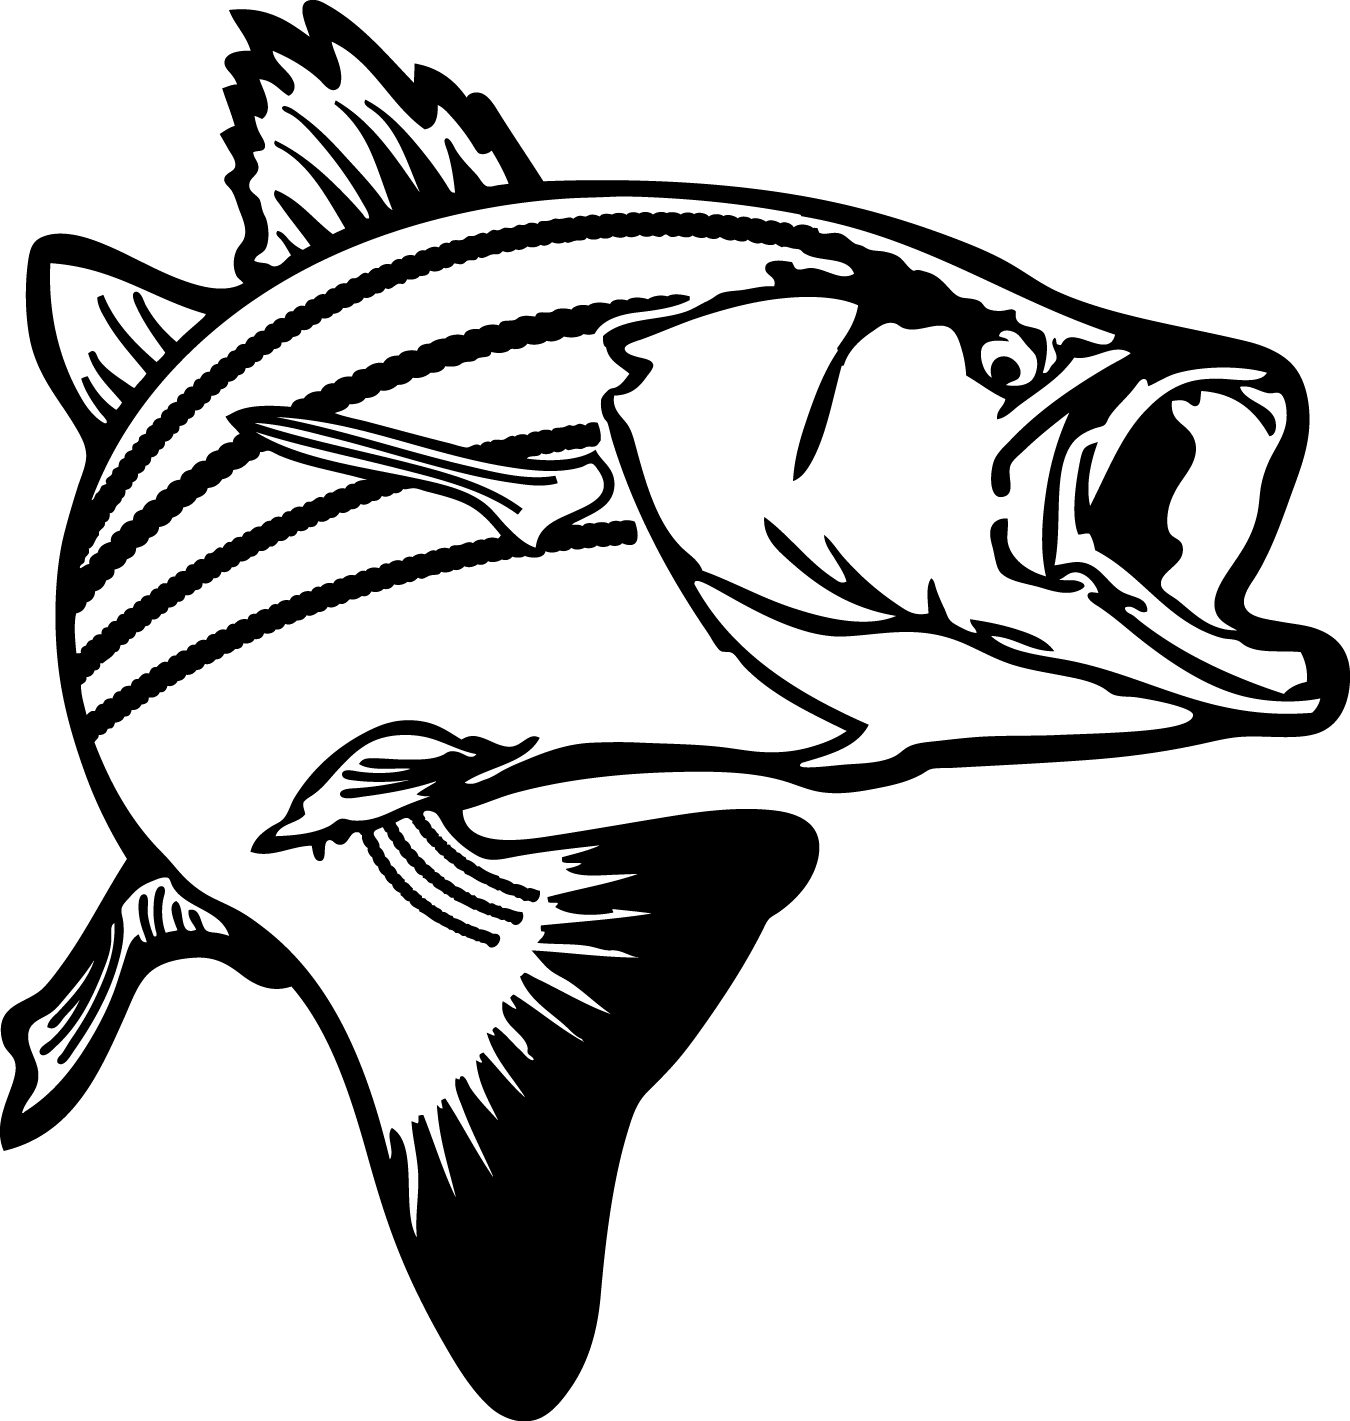 bass outline bass fish outline coloring pages best place to color outline bass